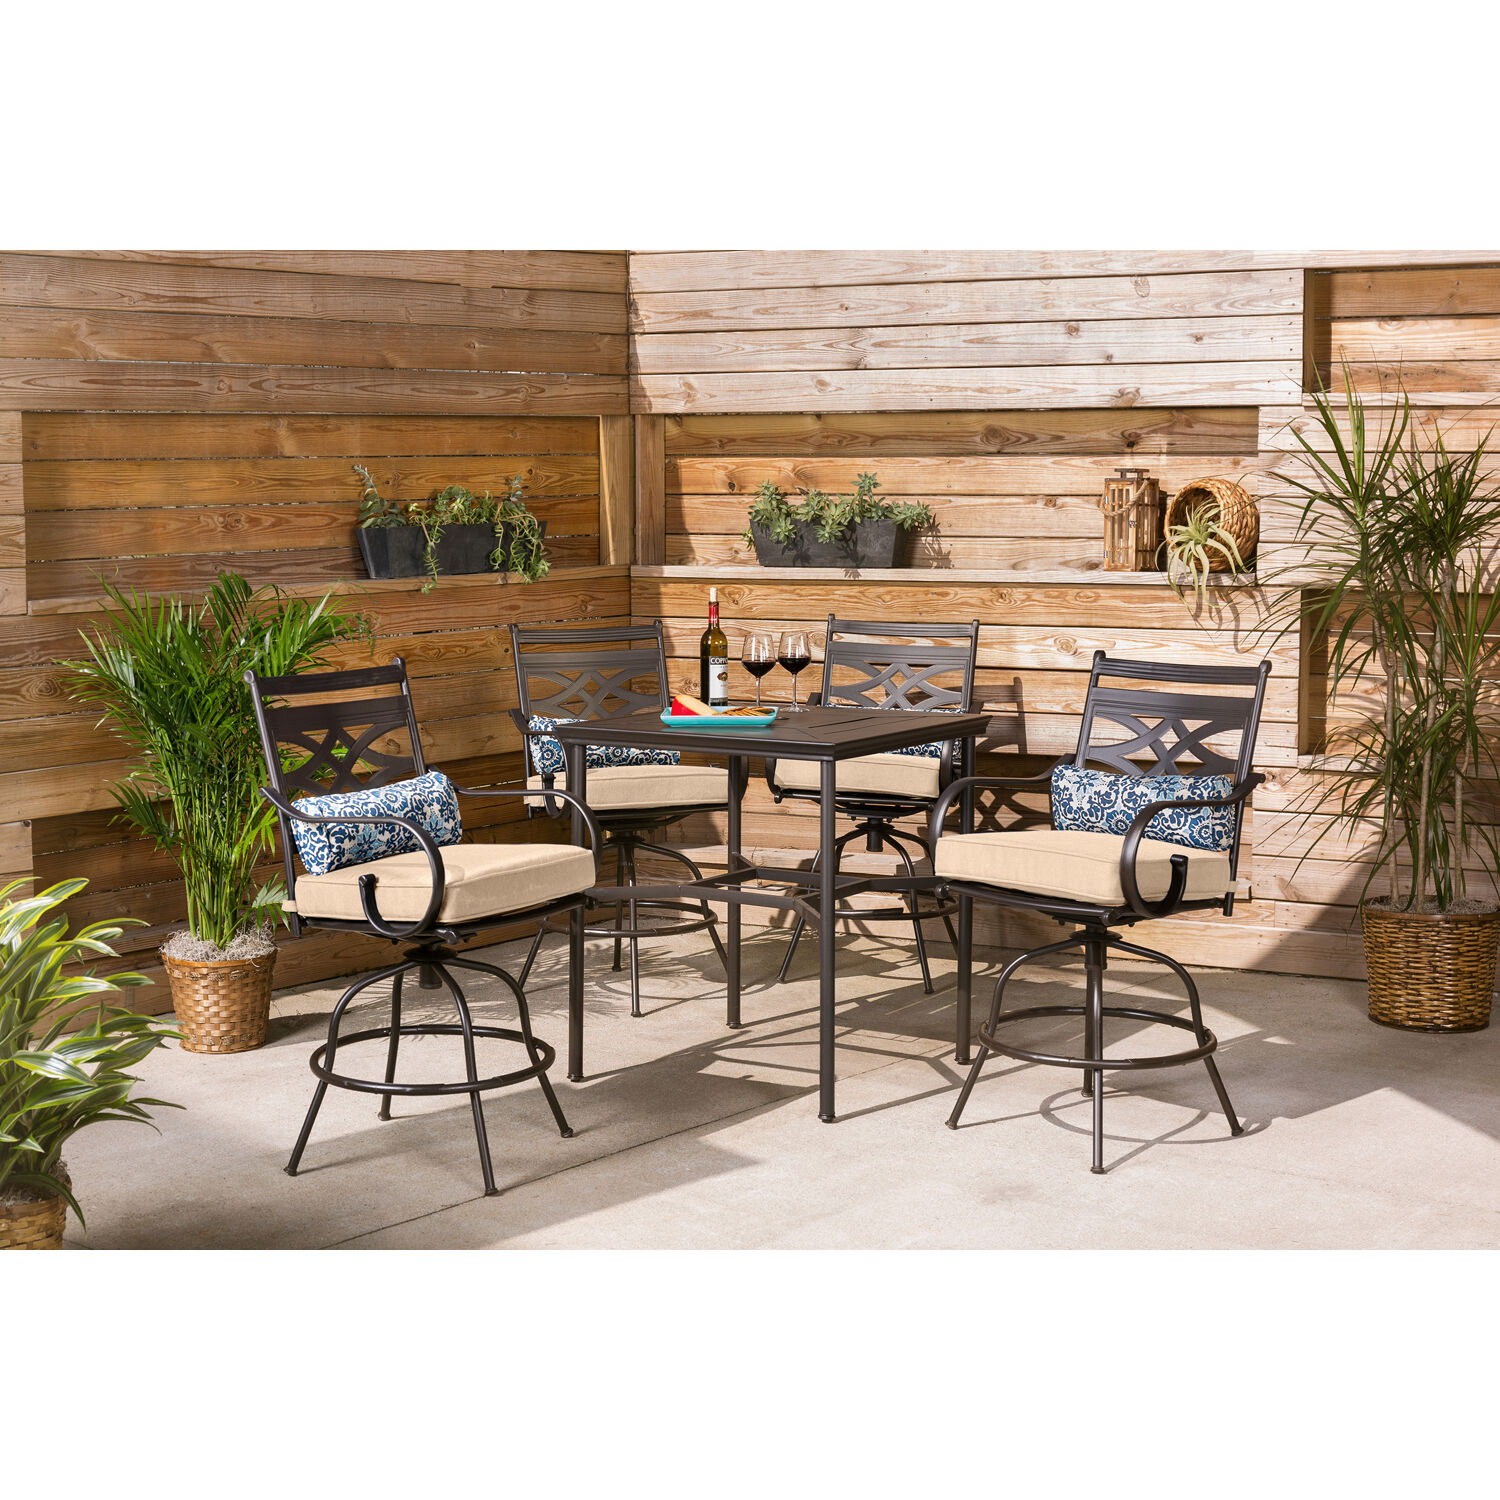 hanover montclair 5 piece high dining patio set in country cork with 4 swivel chairs and a 33 in counter height dining table walmart com